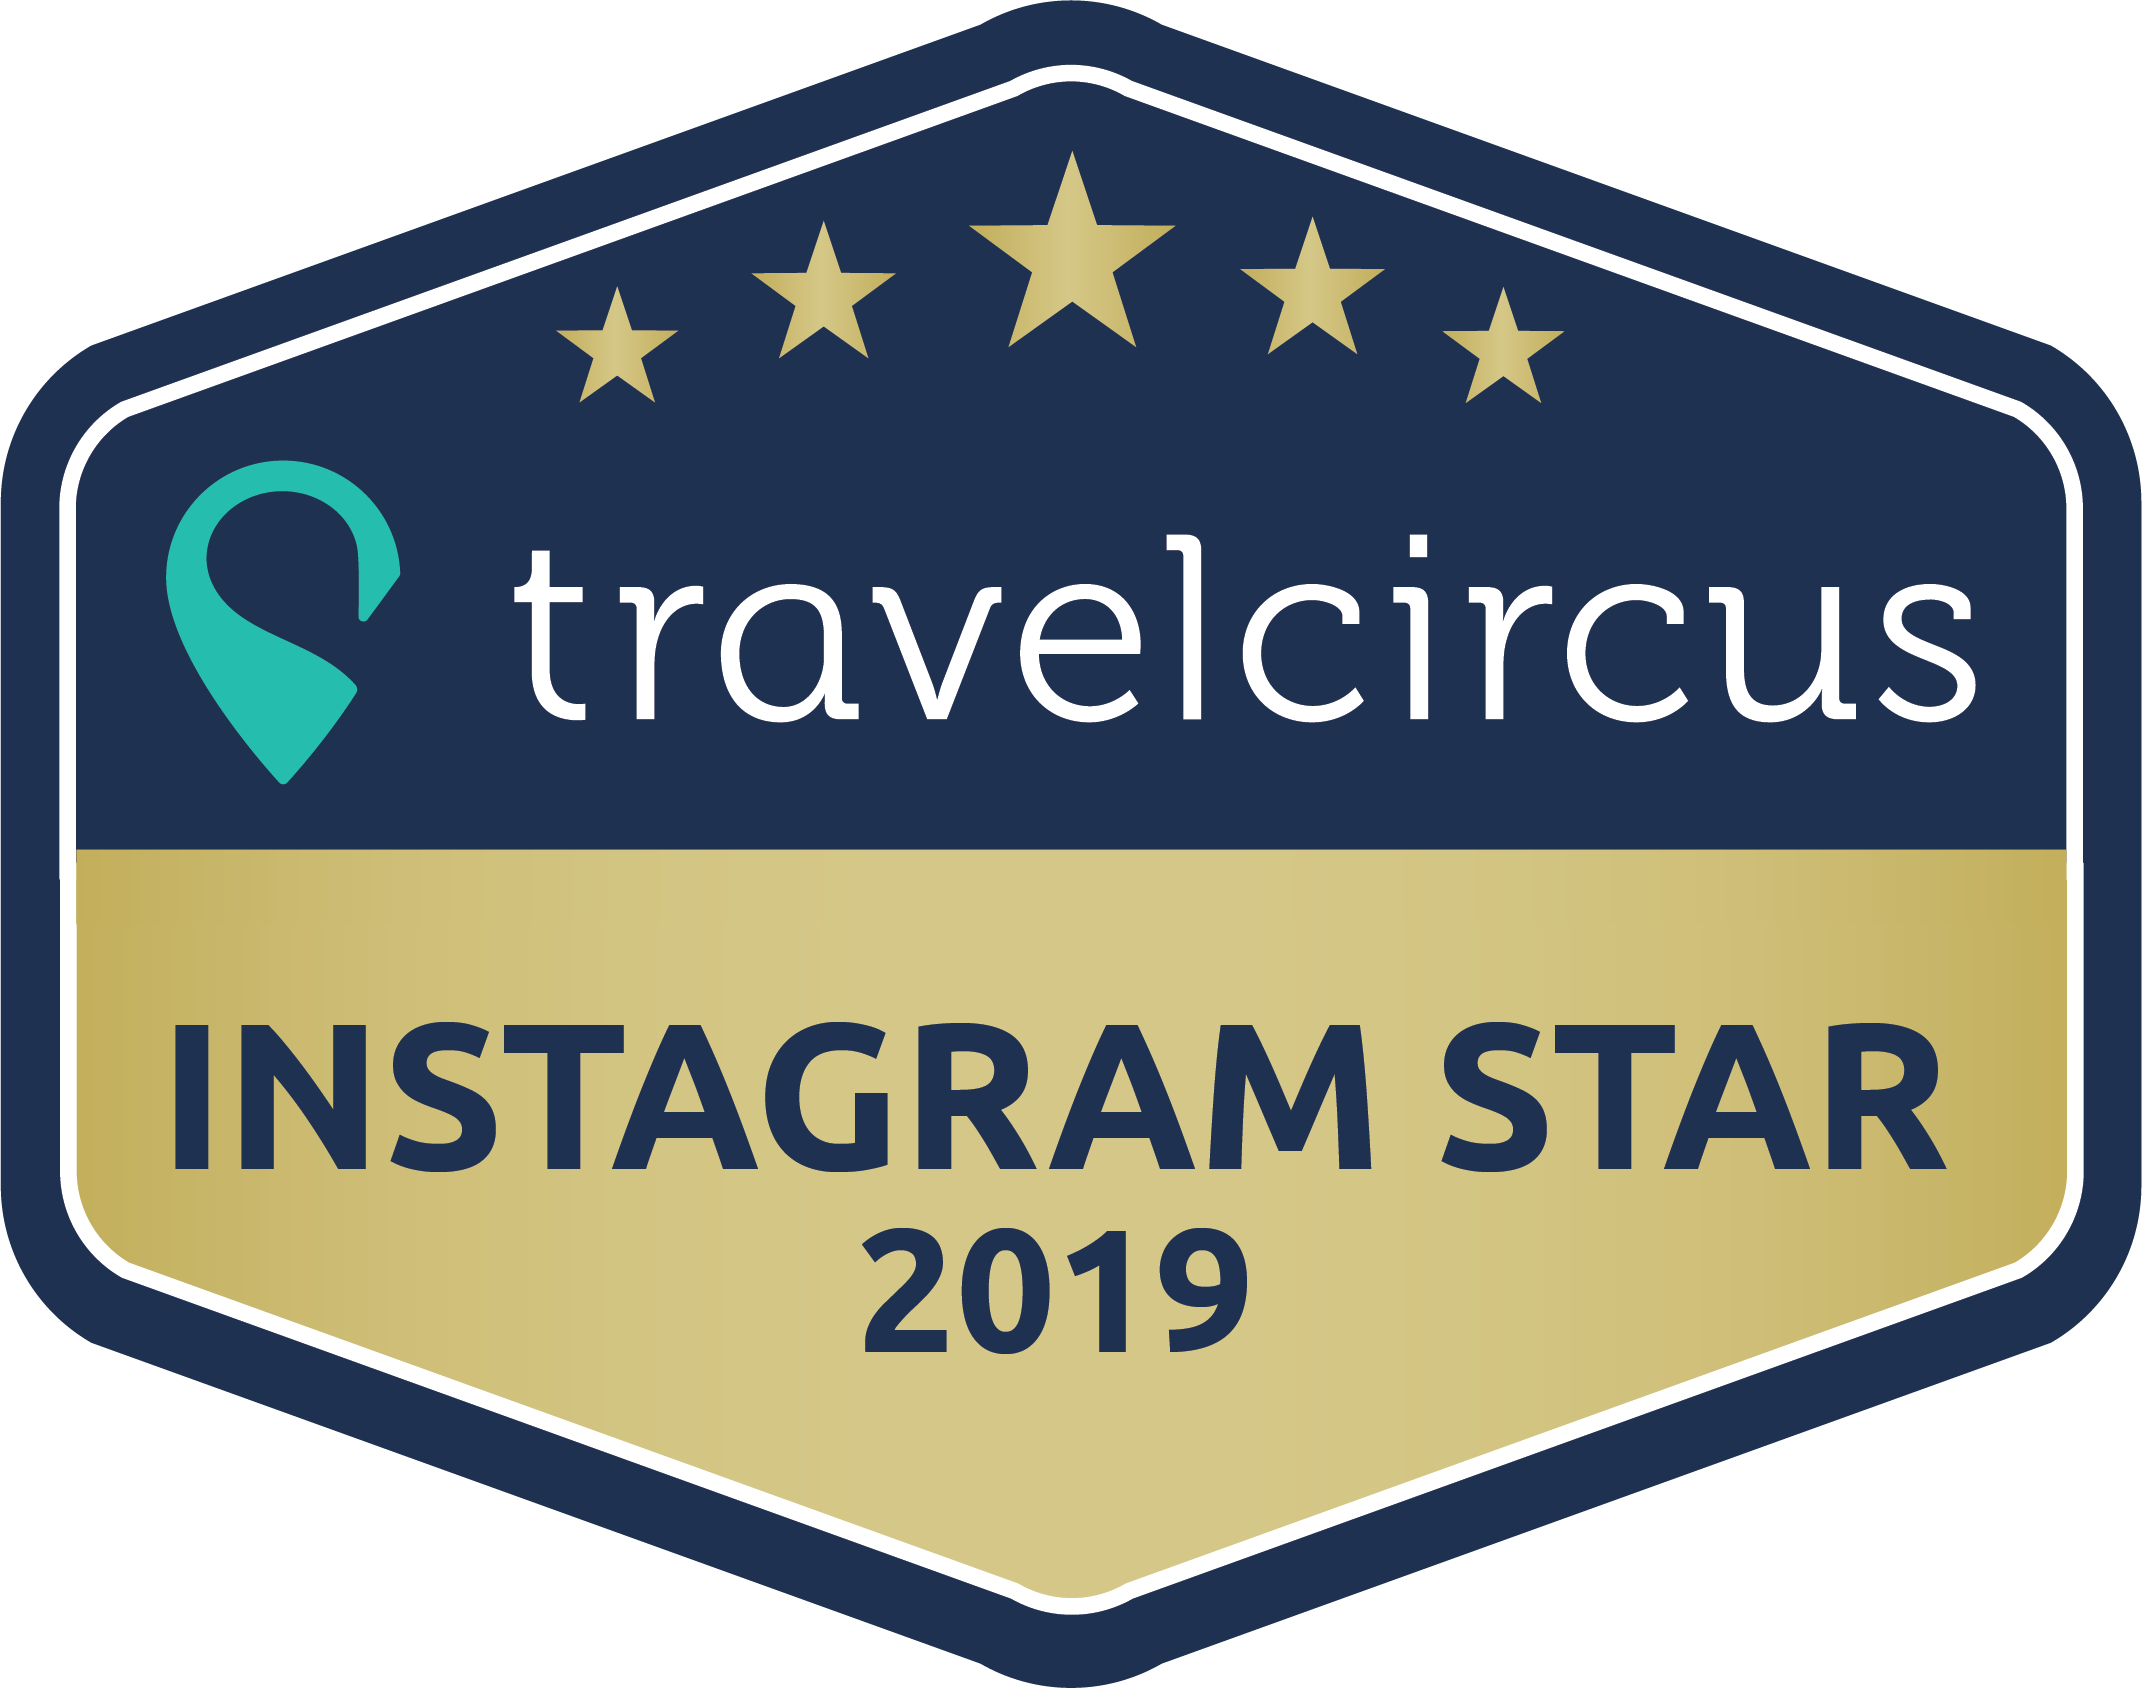 Instagram Star Award